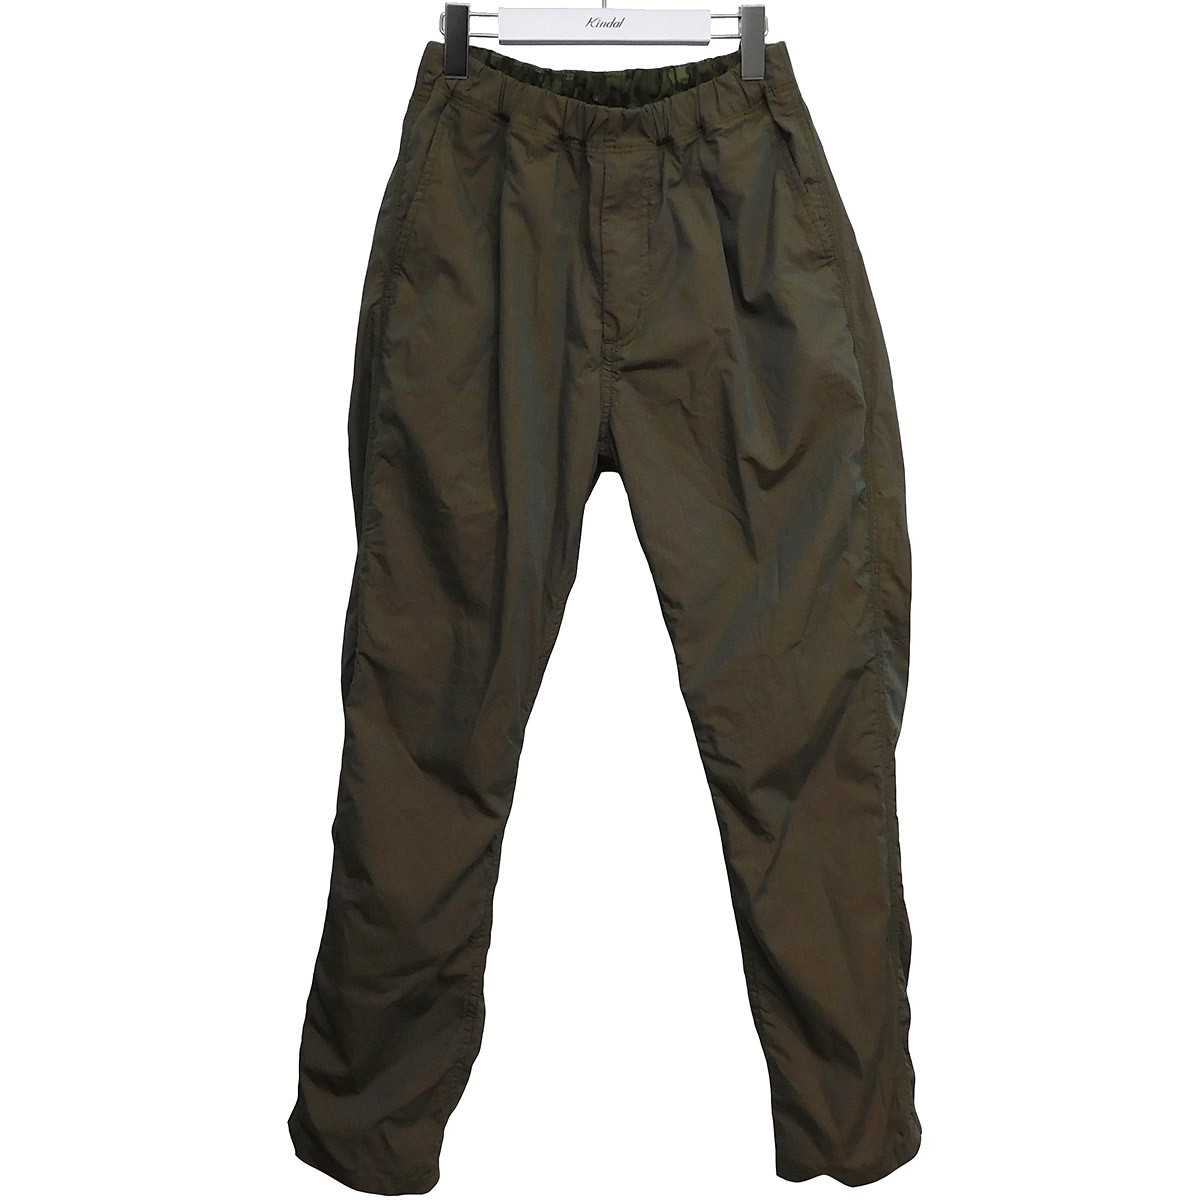 【中古】nonnative 2020SS DWELLER EASY PANTS RELAX FIT COTTON RIPSTOP オリーブ サイズ:1 【190720】(ノンネイティブ)